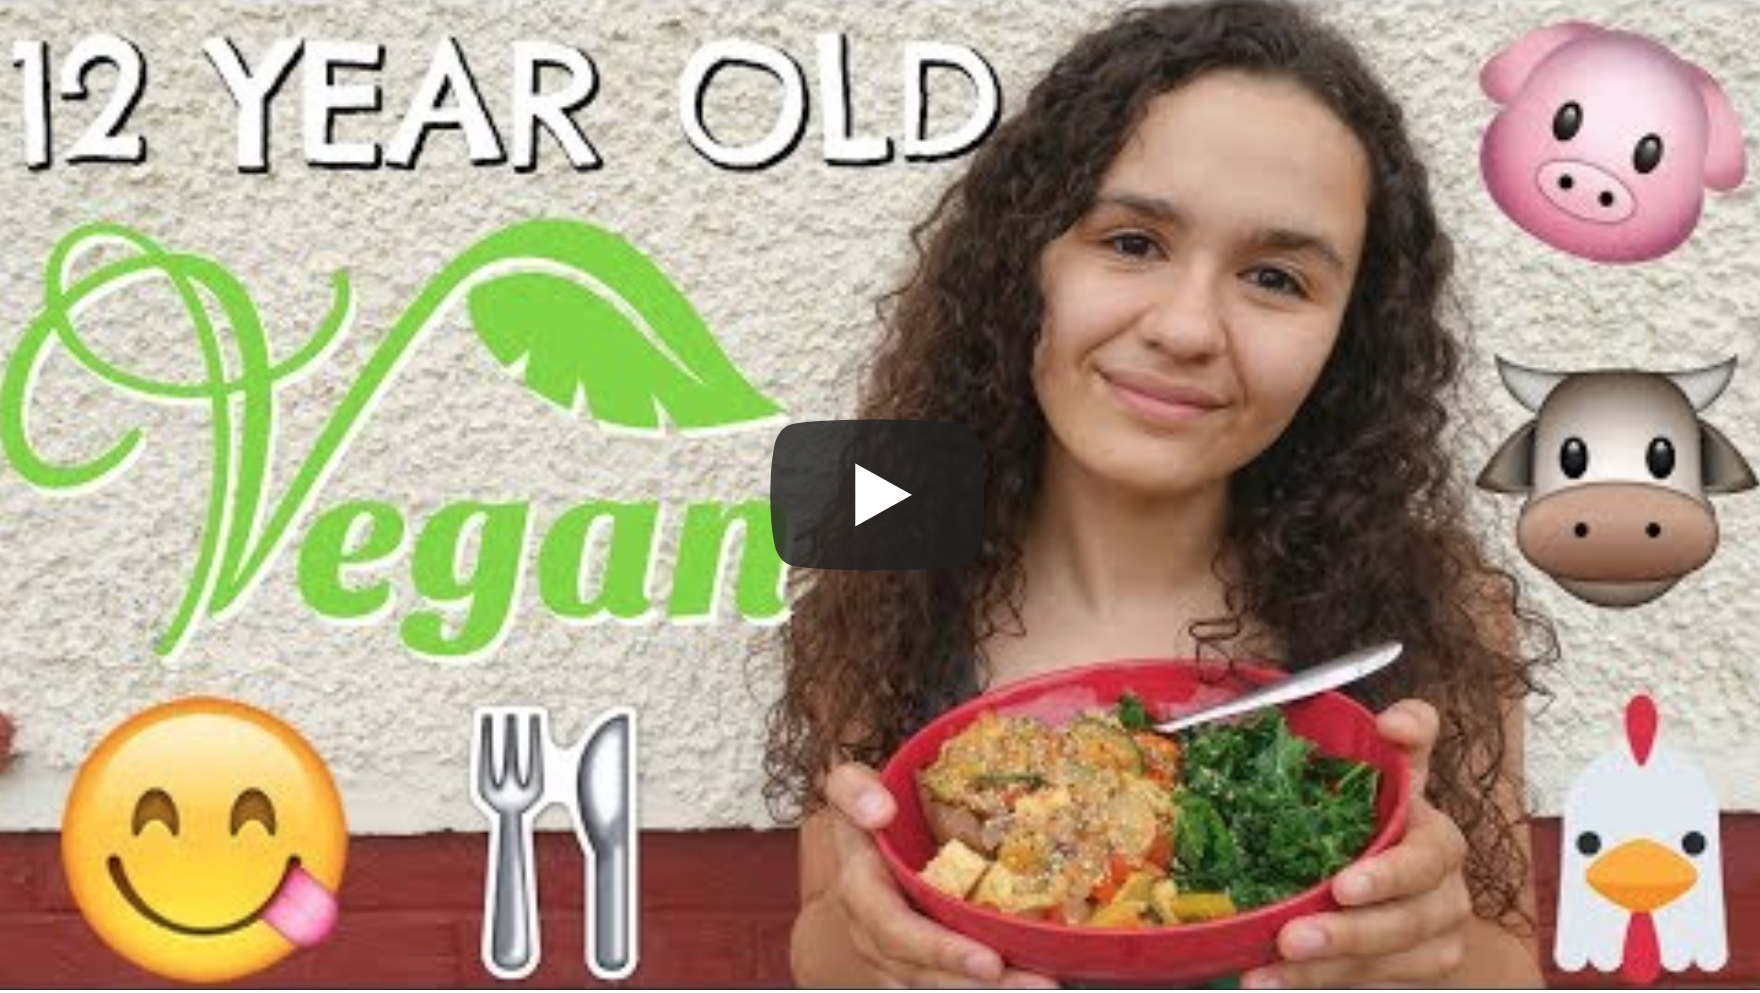 WHAT A 12 YEAR OLD VEGAN KID EATS IN A DAY!🌱 | VeganFlix